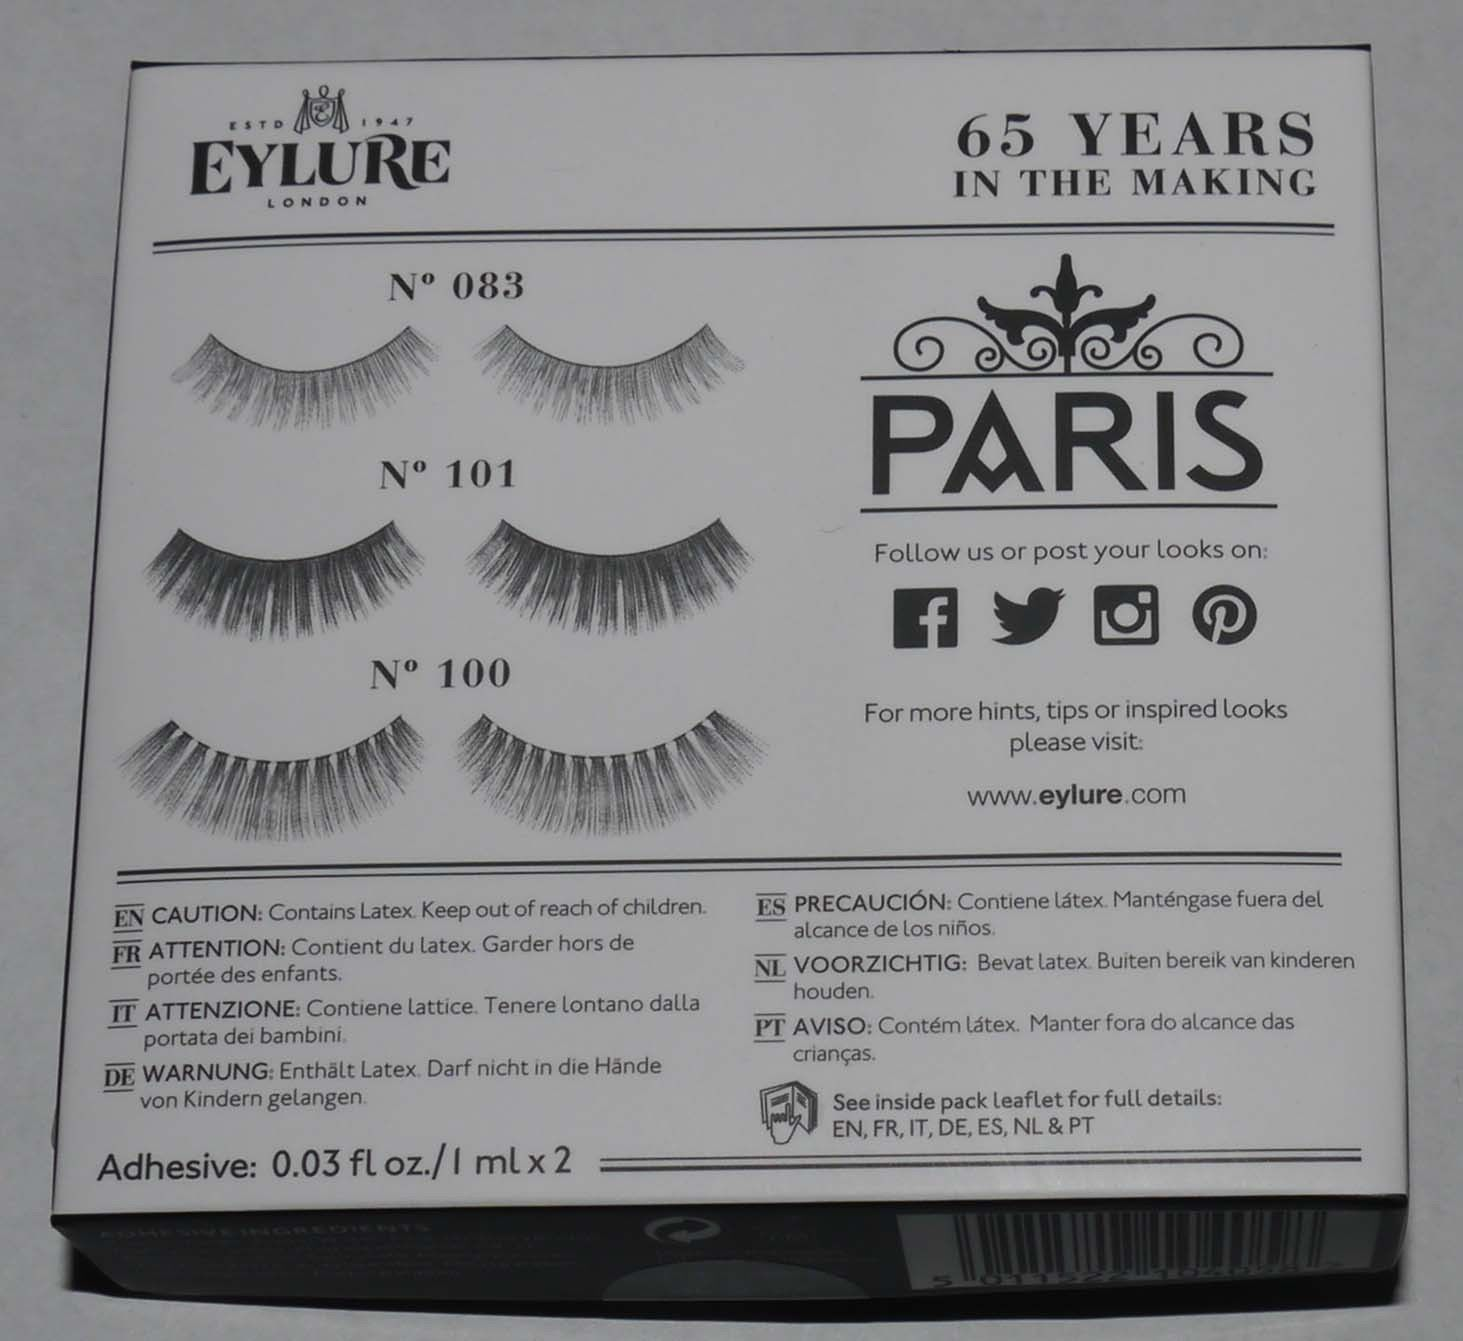 Eylure London Set of 3 The Lash Edit - Paris Re-Usable False Eye Lashes